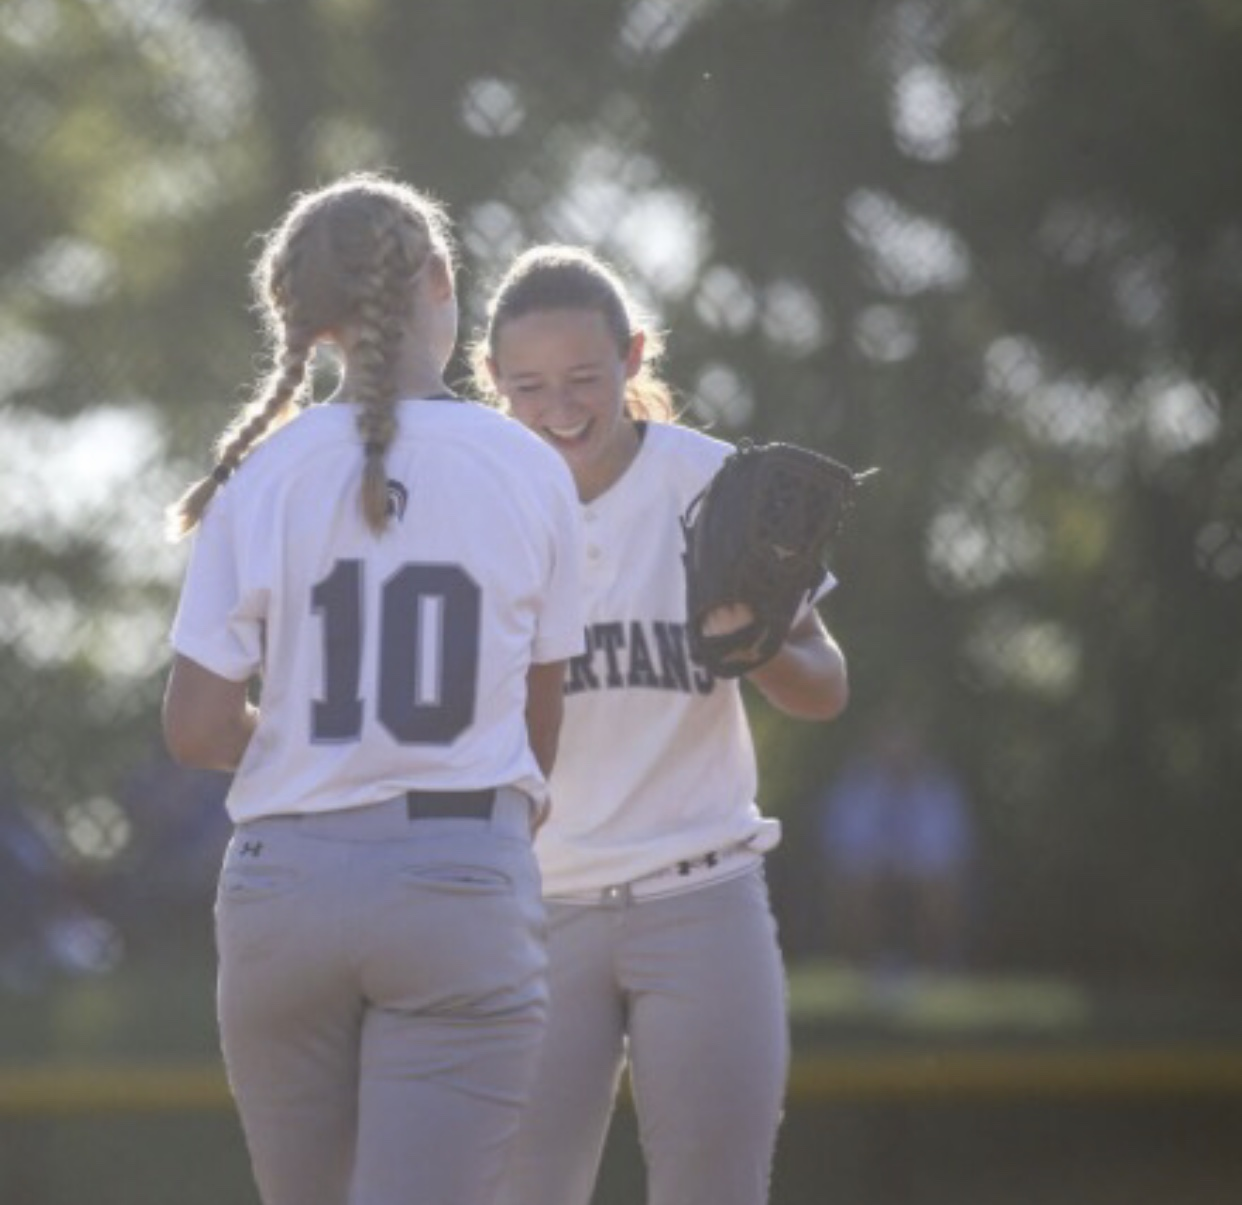 Ellie and Carli Spelhaug celebrate together after a conference play win in June of 2018. The two athletes went on to lead their team in becoming back-to-back state champions.